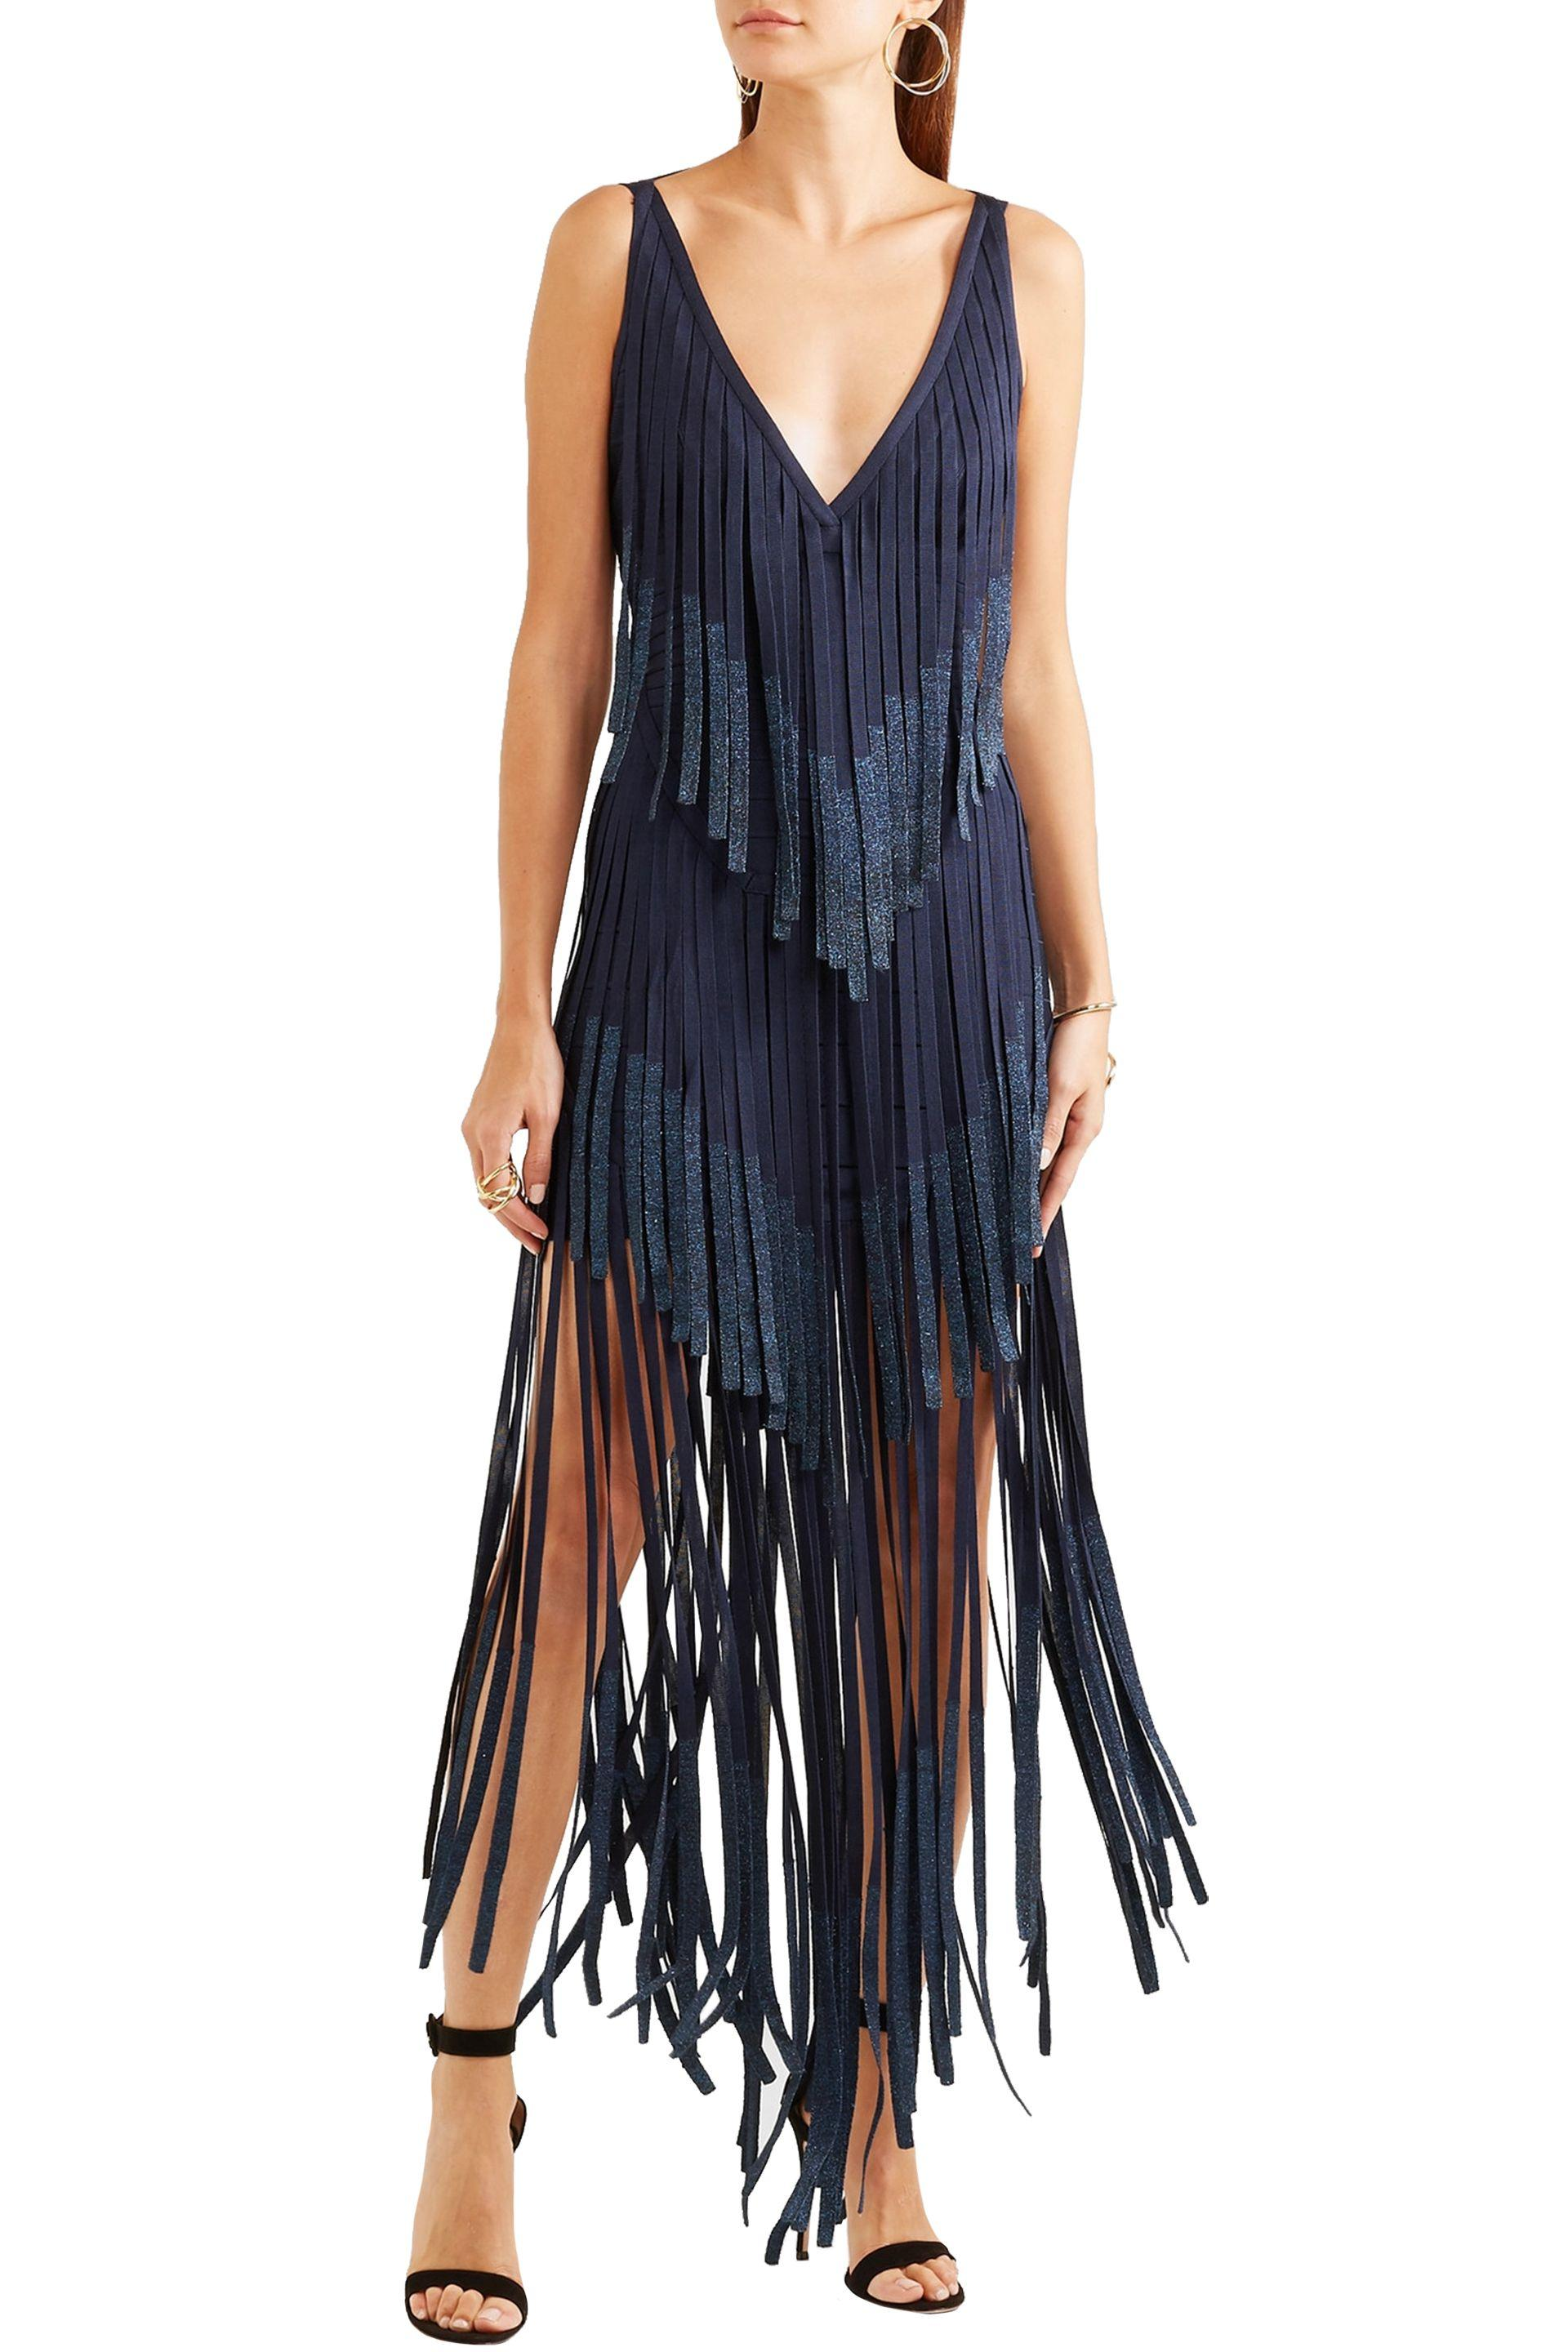 69767b4a5b1 ... Hervé Léger Woman Izabel Open-back Fringed Metallic Bandage Midi Dress  Midnight. View fullscreen